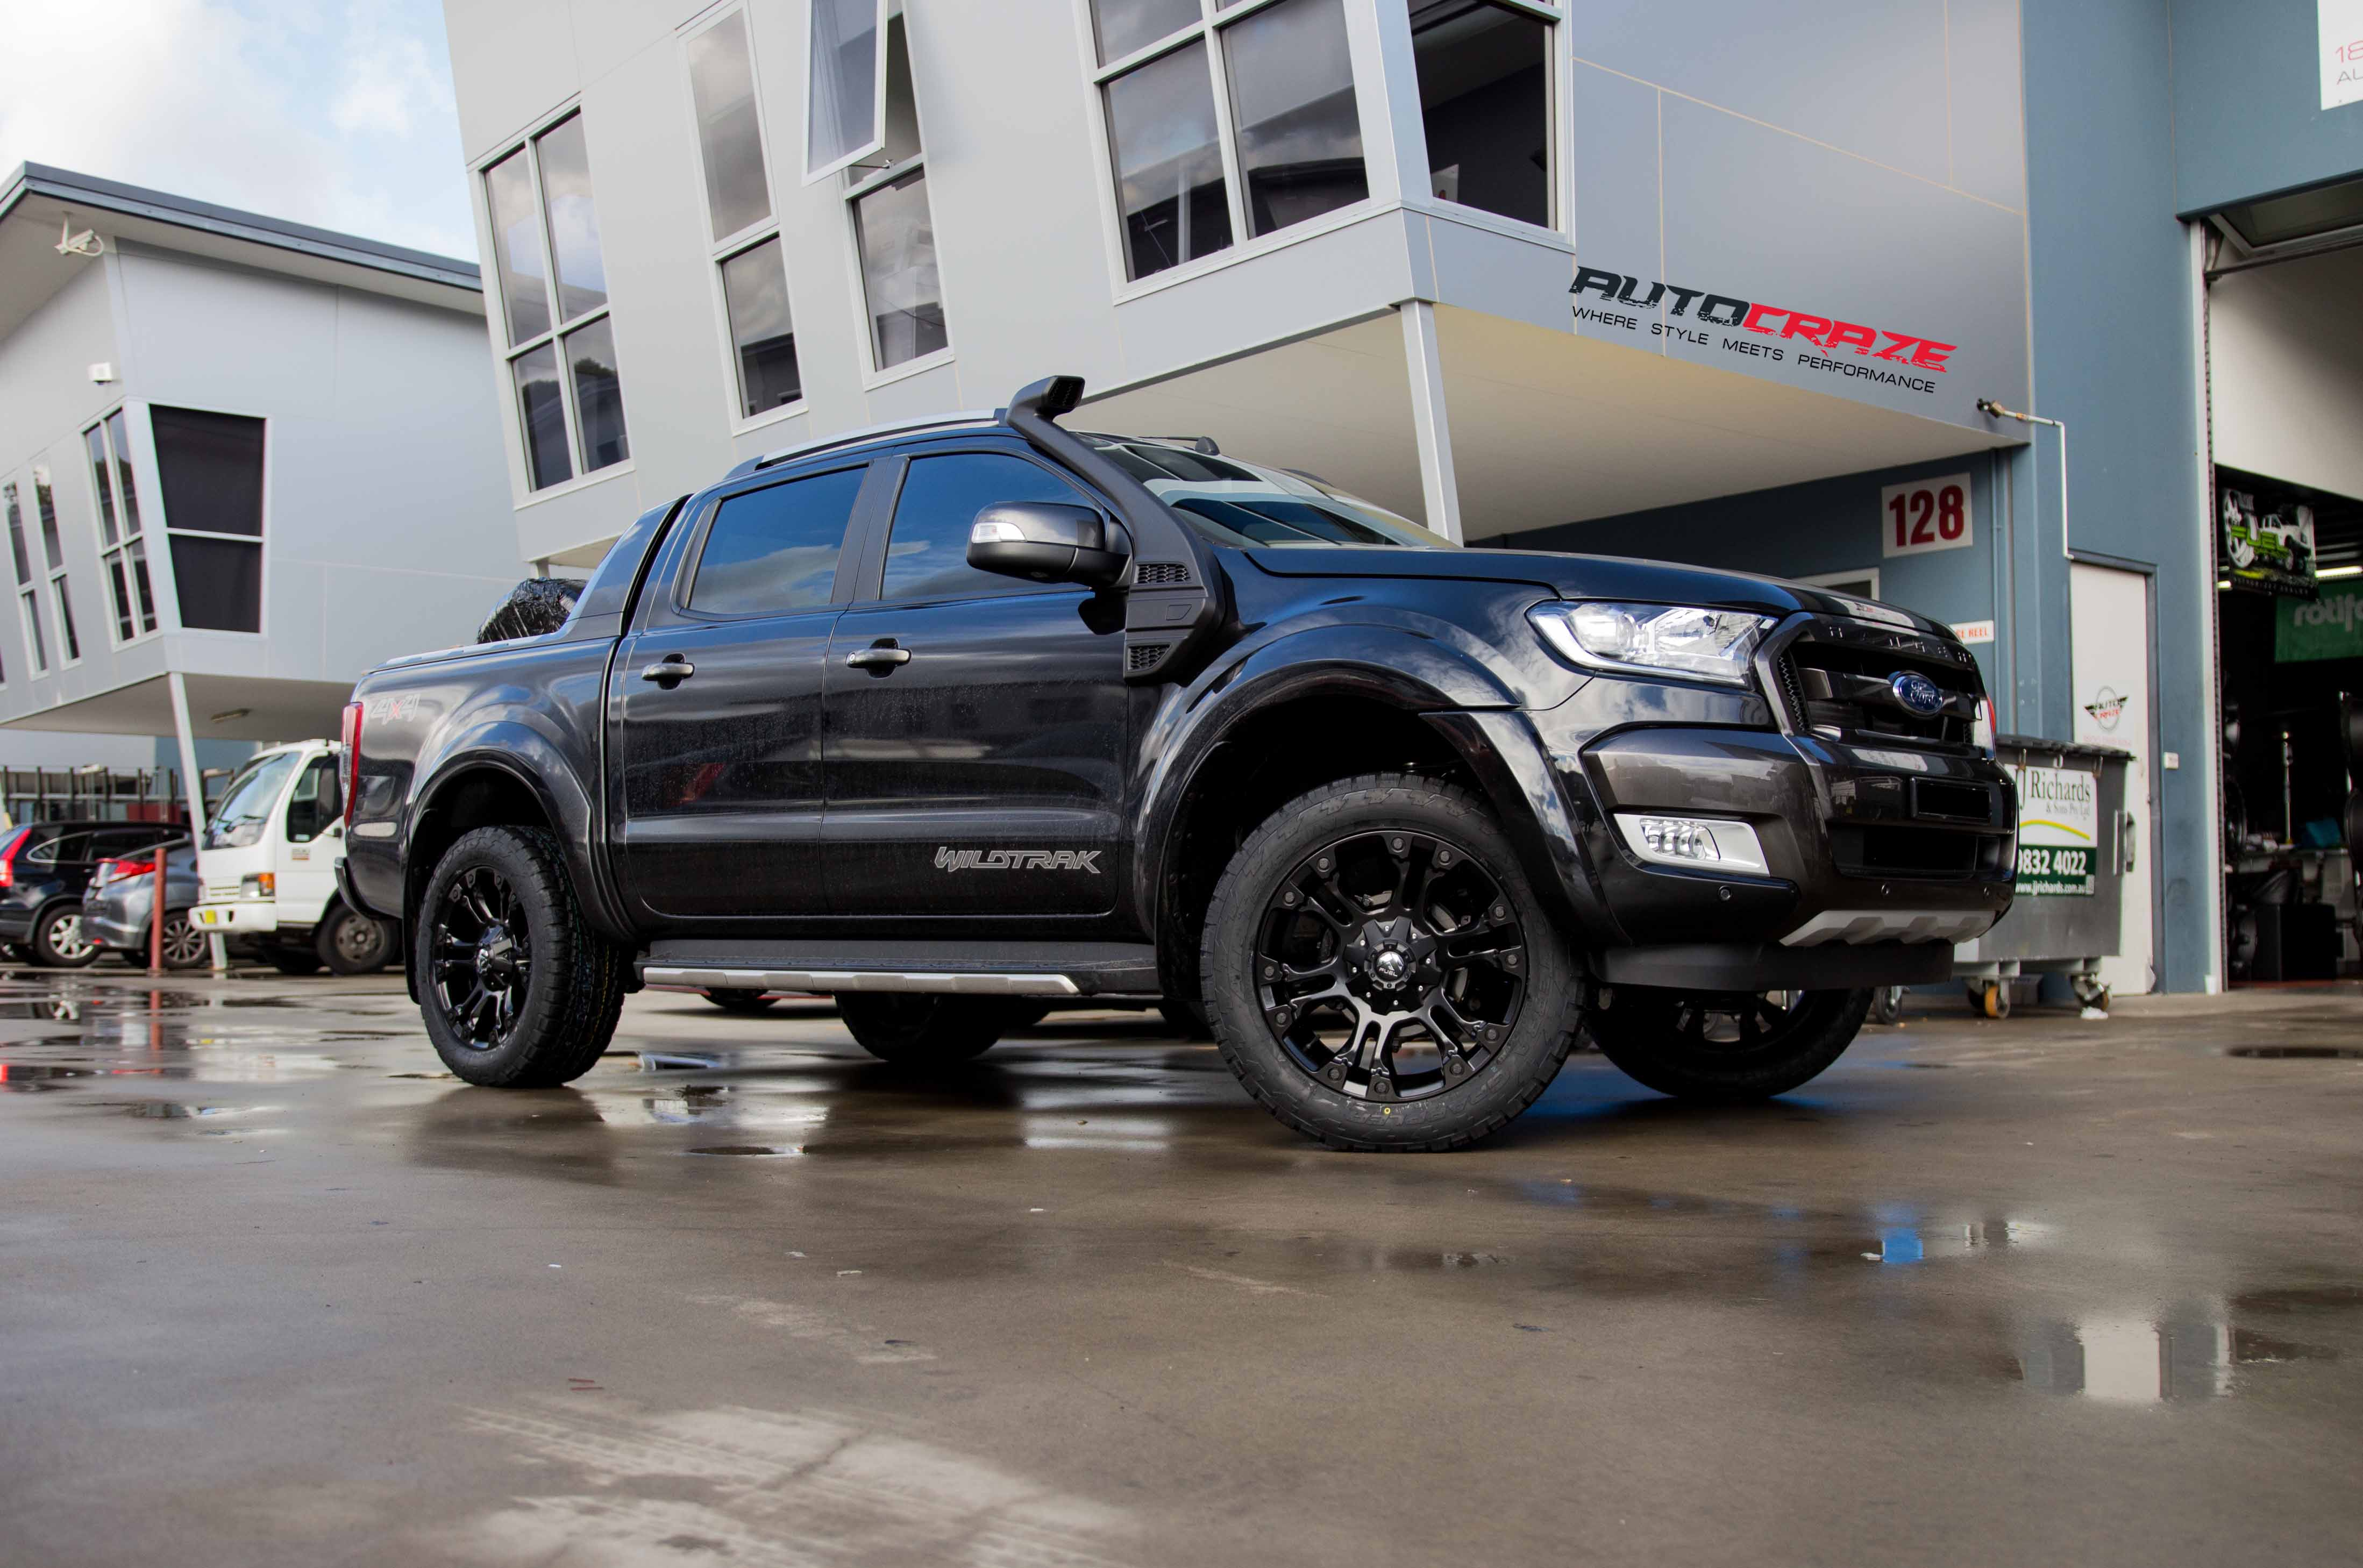 Wheels For Ford Ranger | 4WD Mag Rims To Suit Ford Ranger